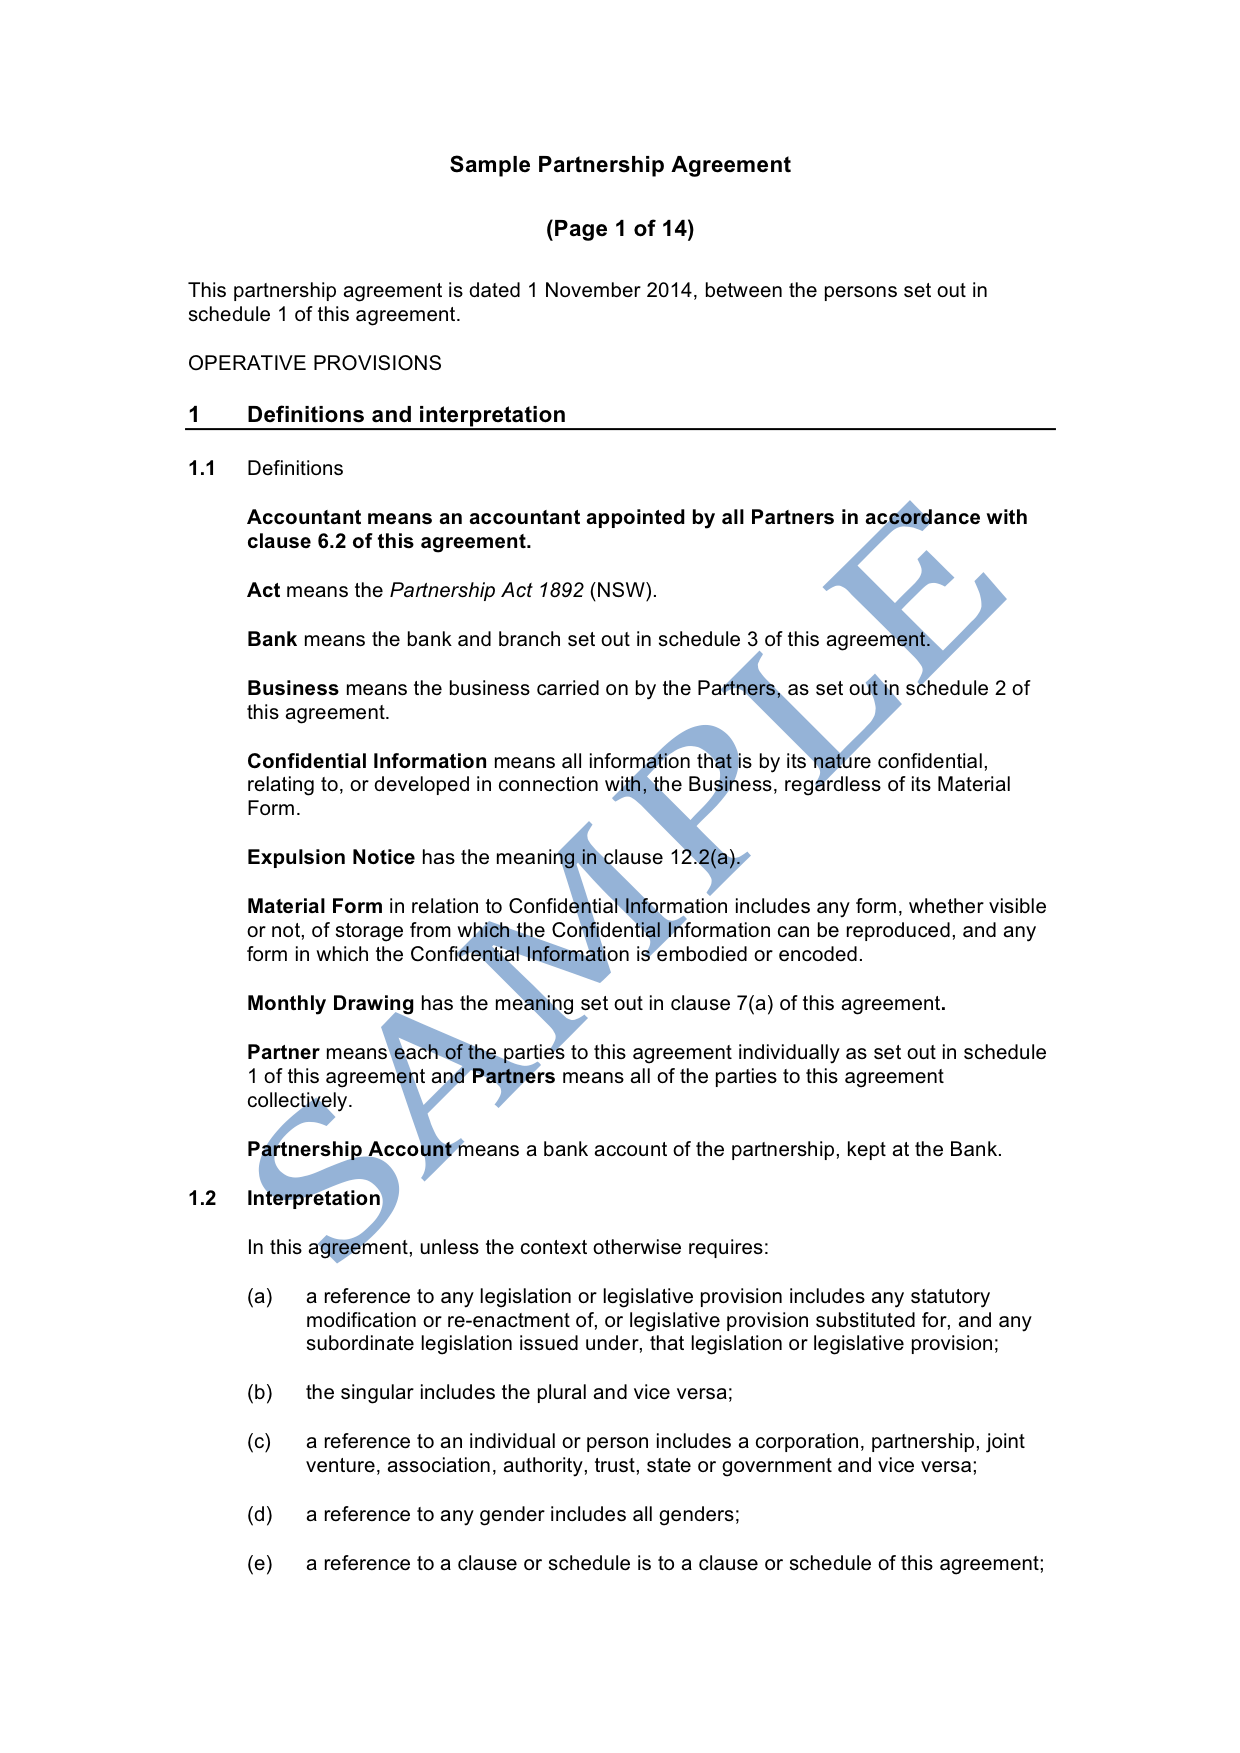 Partnership Agreement Sample - LawPath